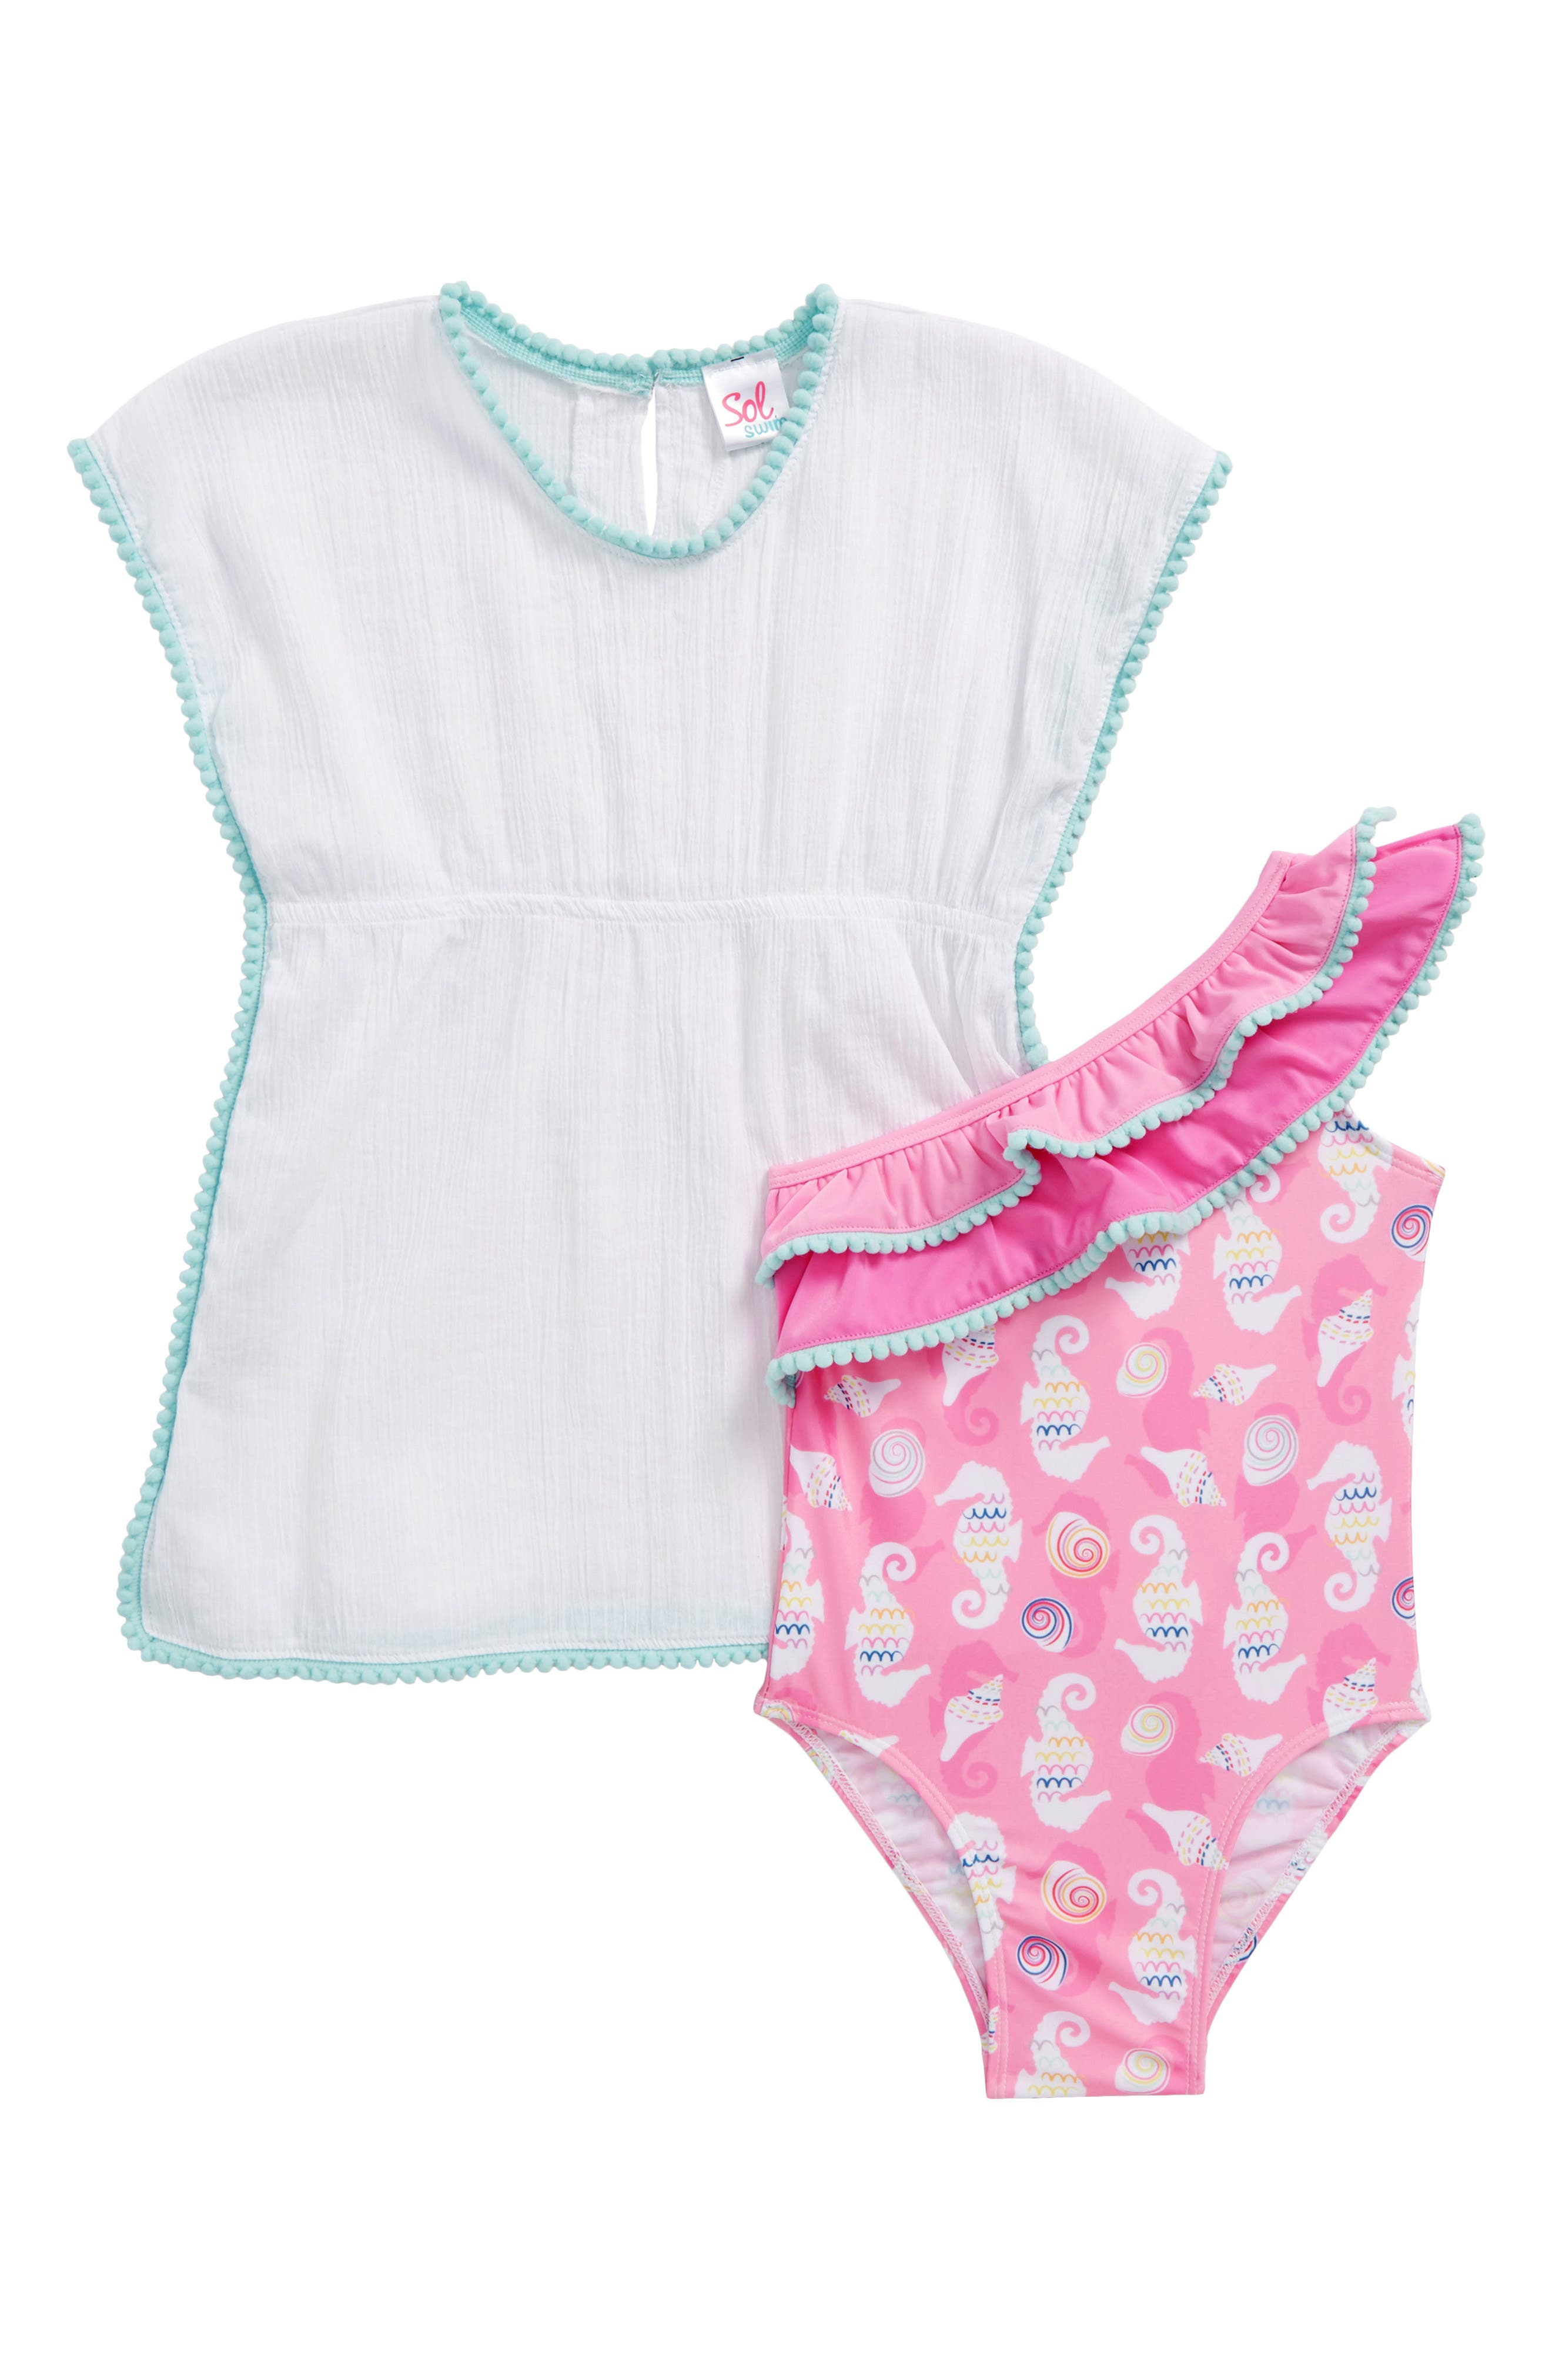 Seahorse One-Piece Swimsuit & Cover-Up Set,                         Main,                         color, 650